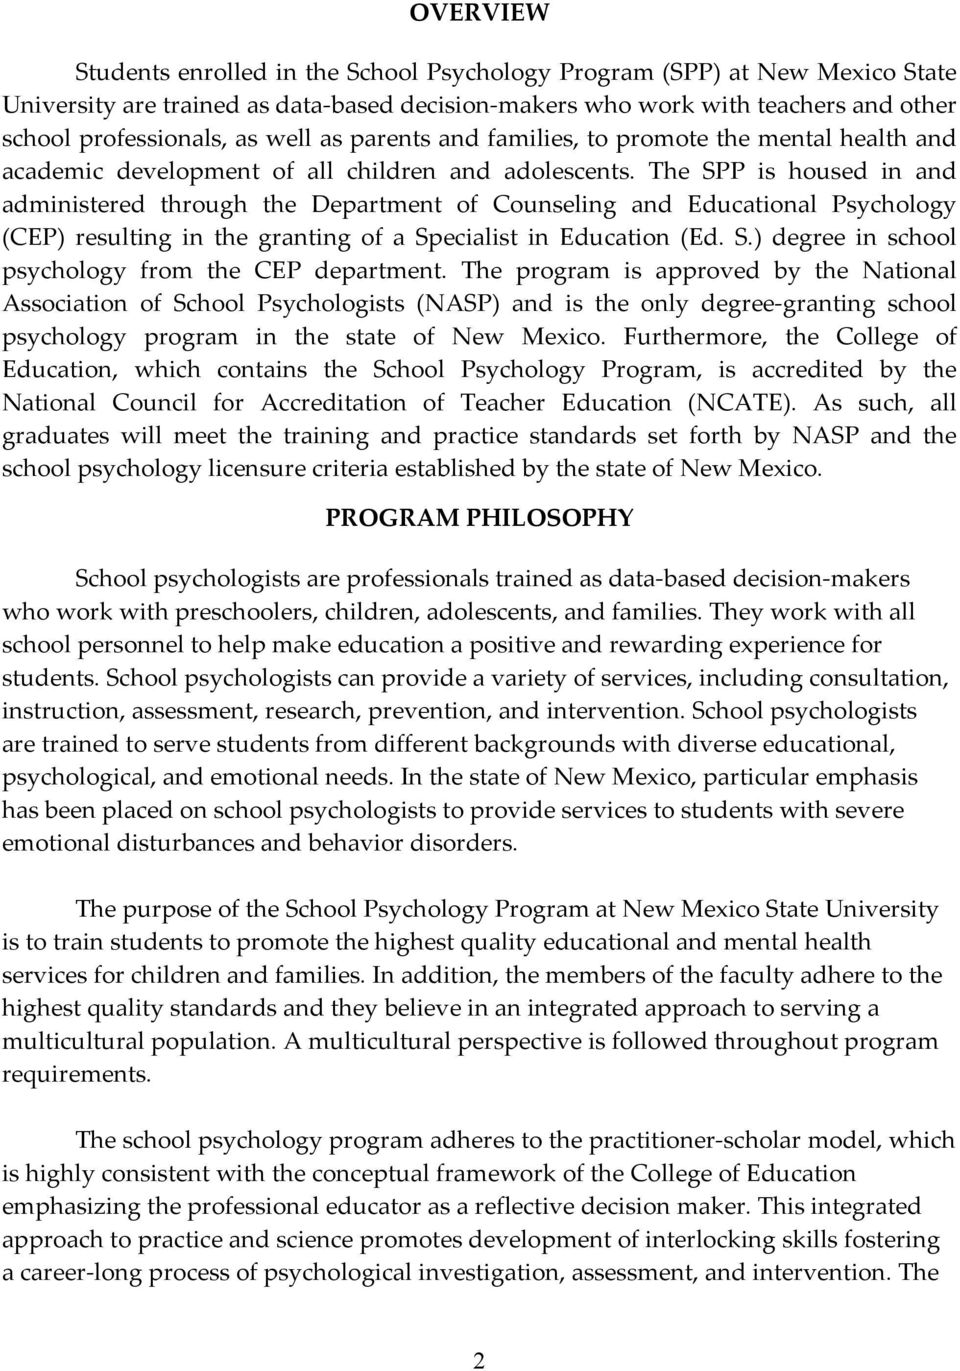 The SPP is housed in and administered through the Department of Counseling and Educational Psychology (CEP) resulting in the granting of a Specialist in Education (Ed. S.) degree in school psychology from the CEP department.